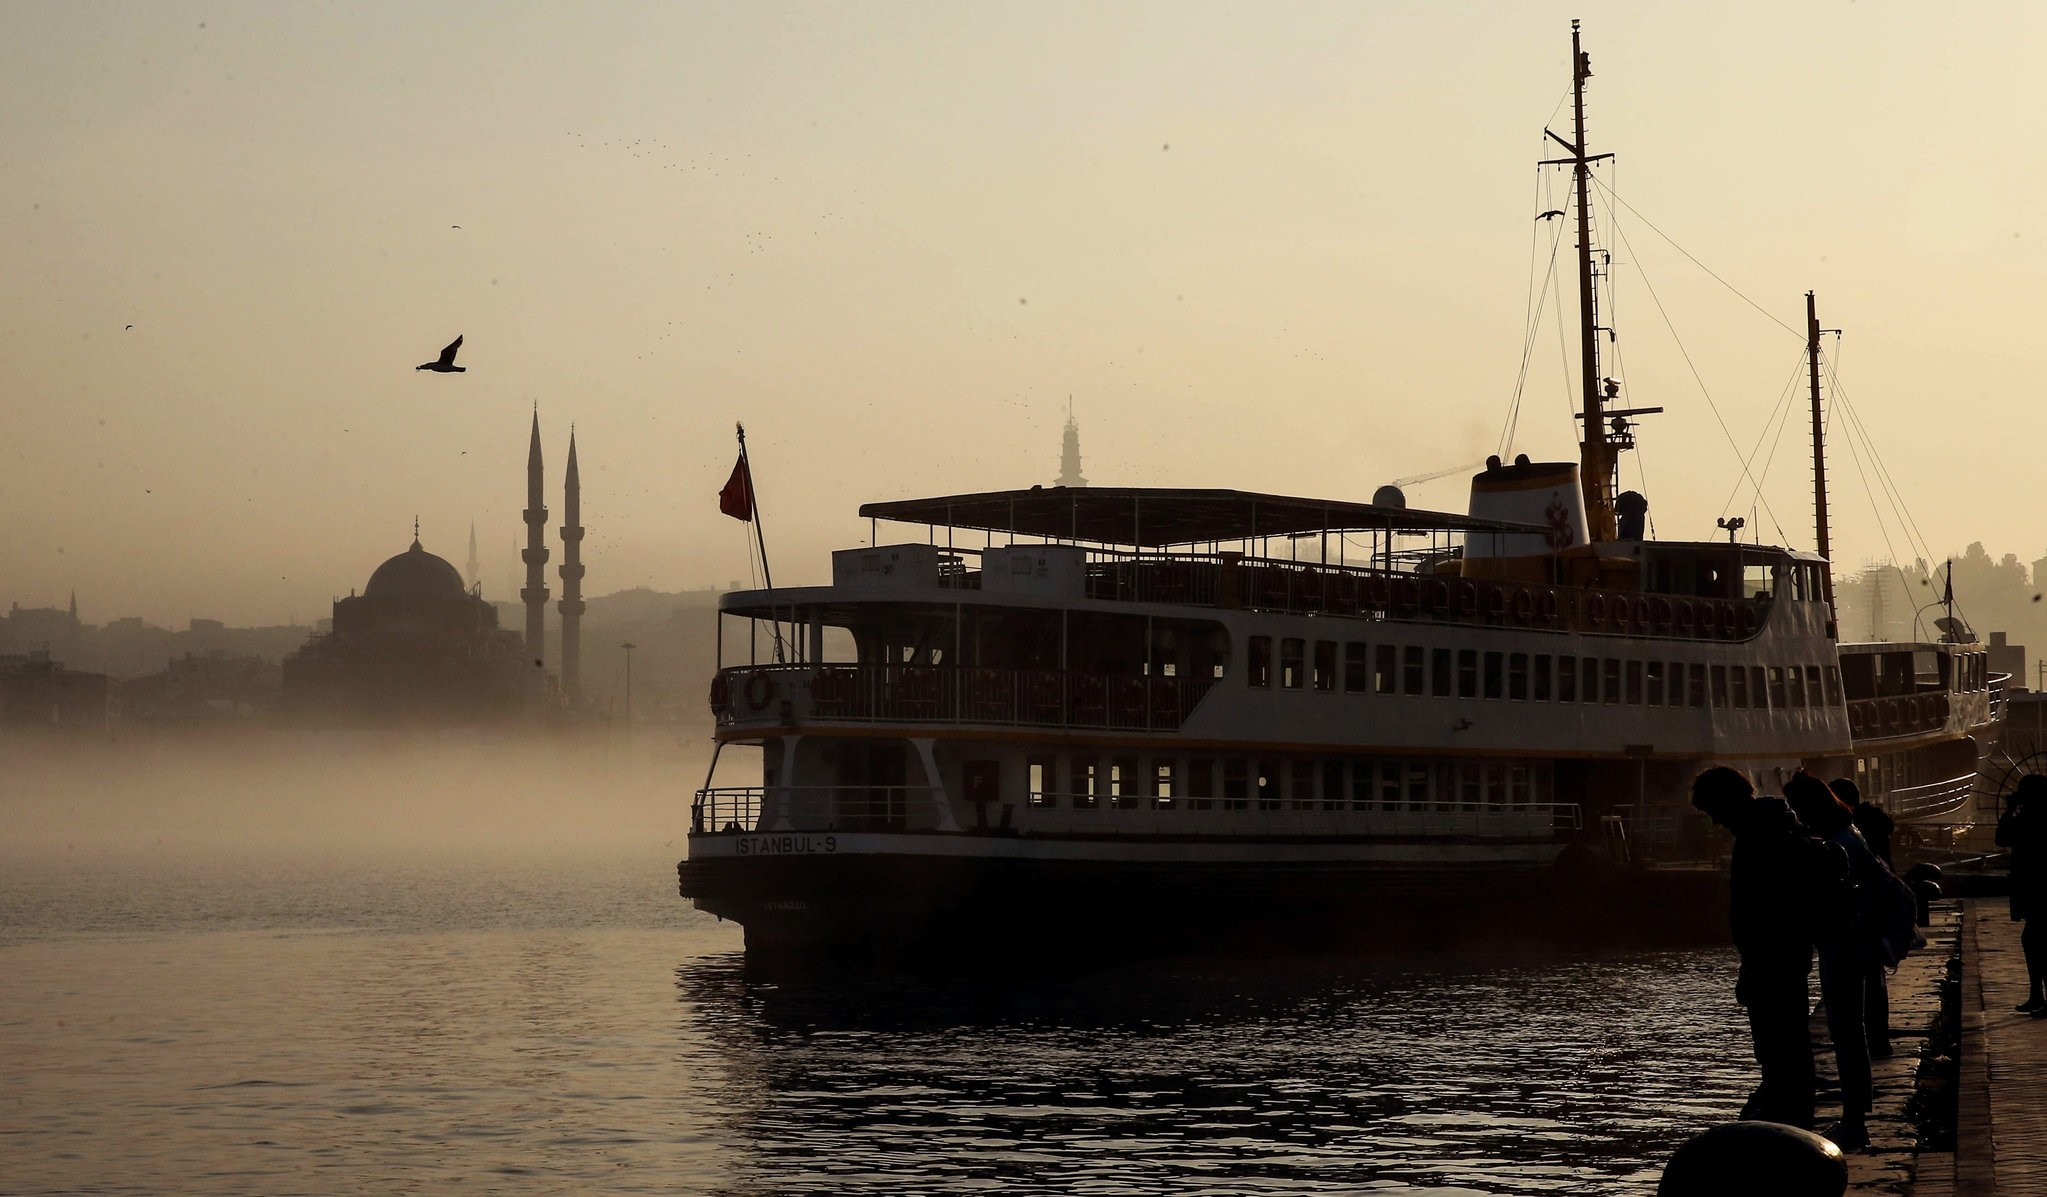 Istanbulu2019s world-famous silhouette will be better protected by a new set of zoning laws that have come into effect.